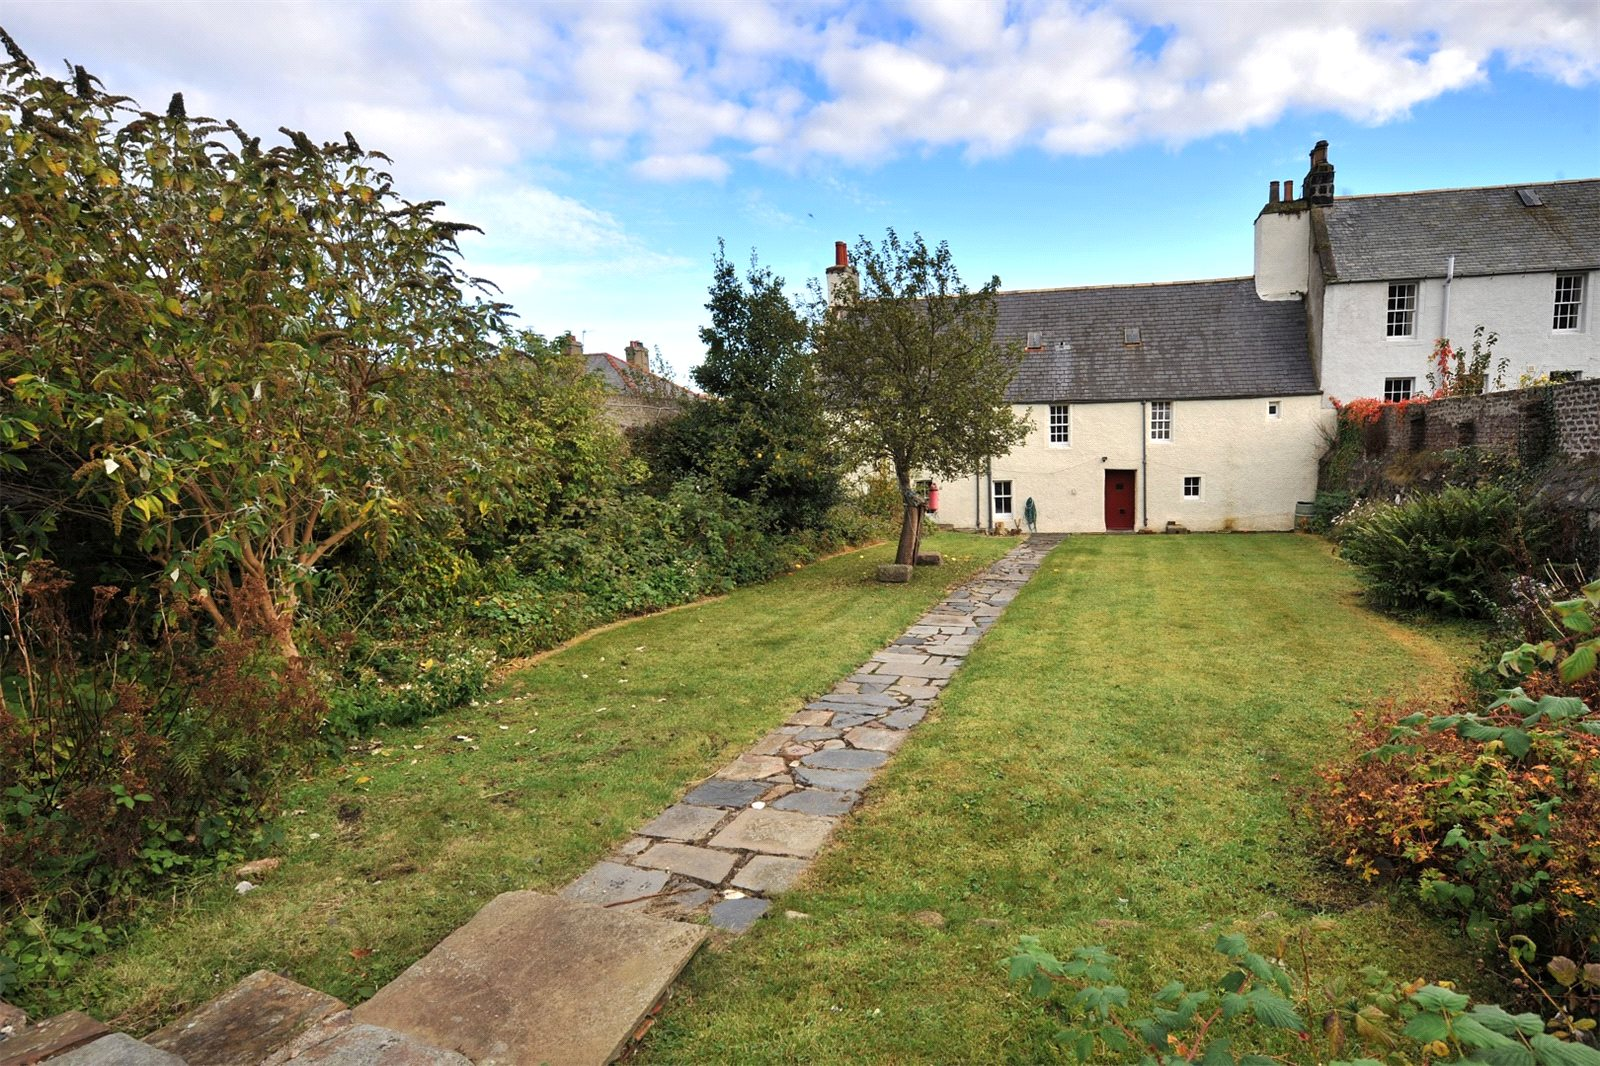 2 Bedrooms House for sale in Ingle Neuk House, 2 Water Path, Banff, Aberdeenshire, AB45